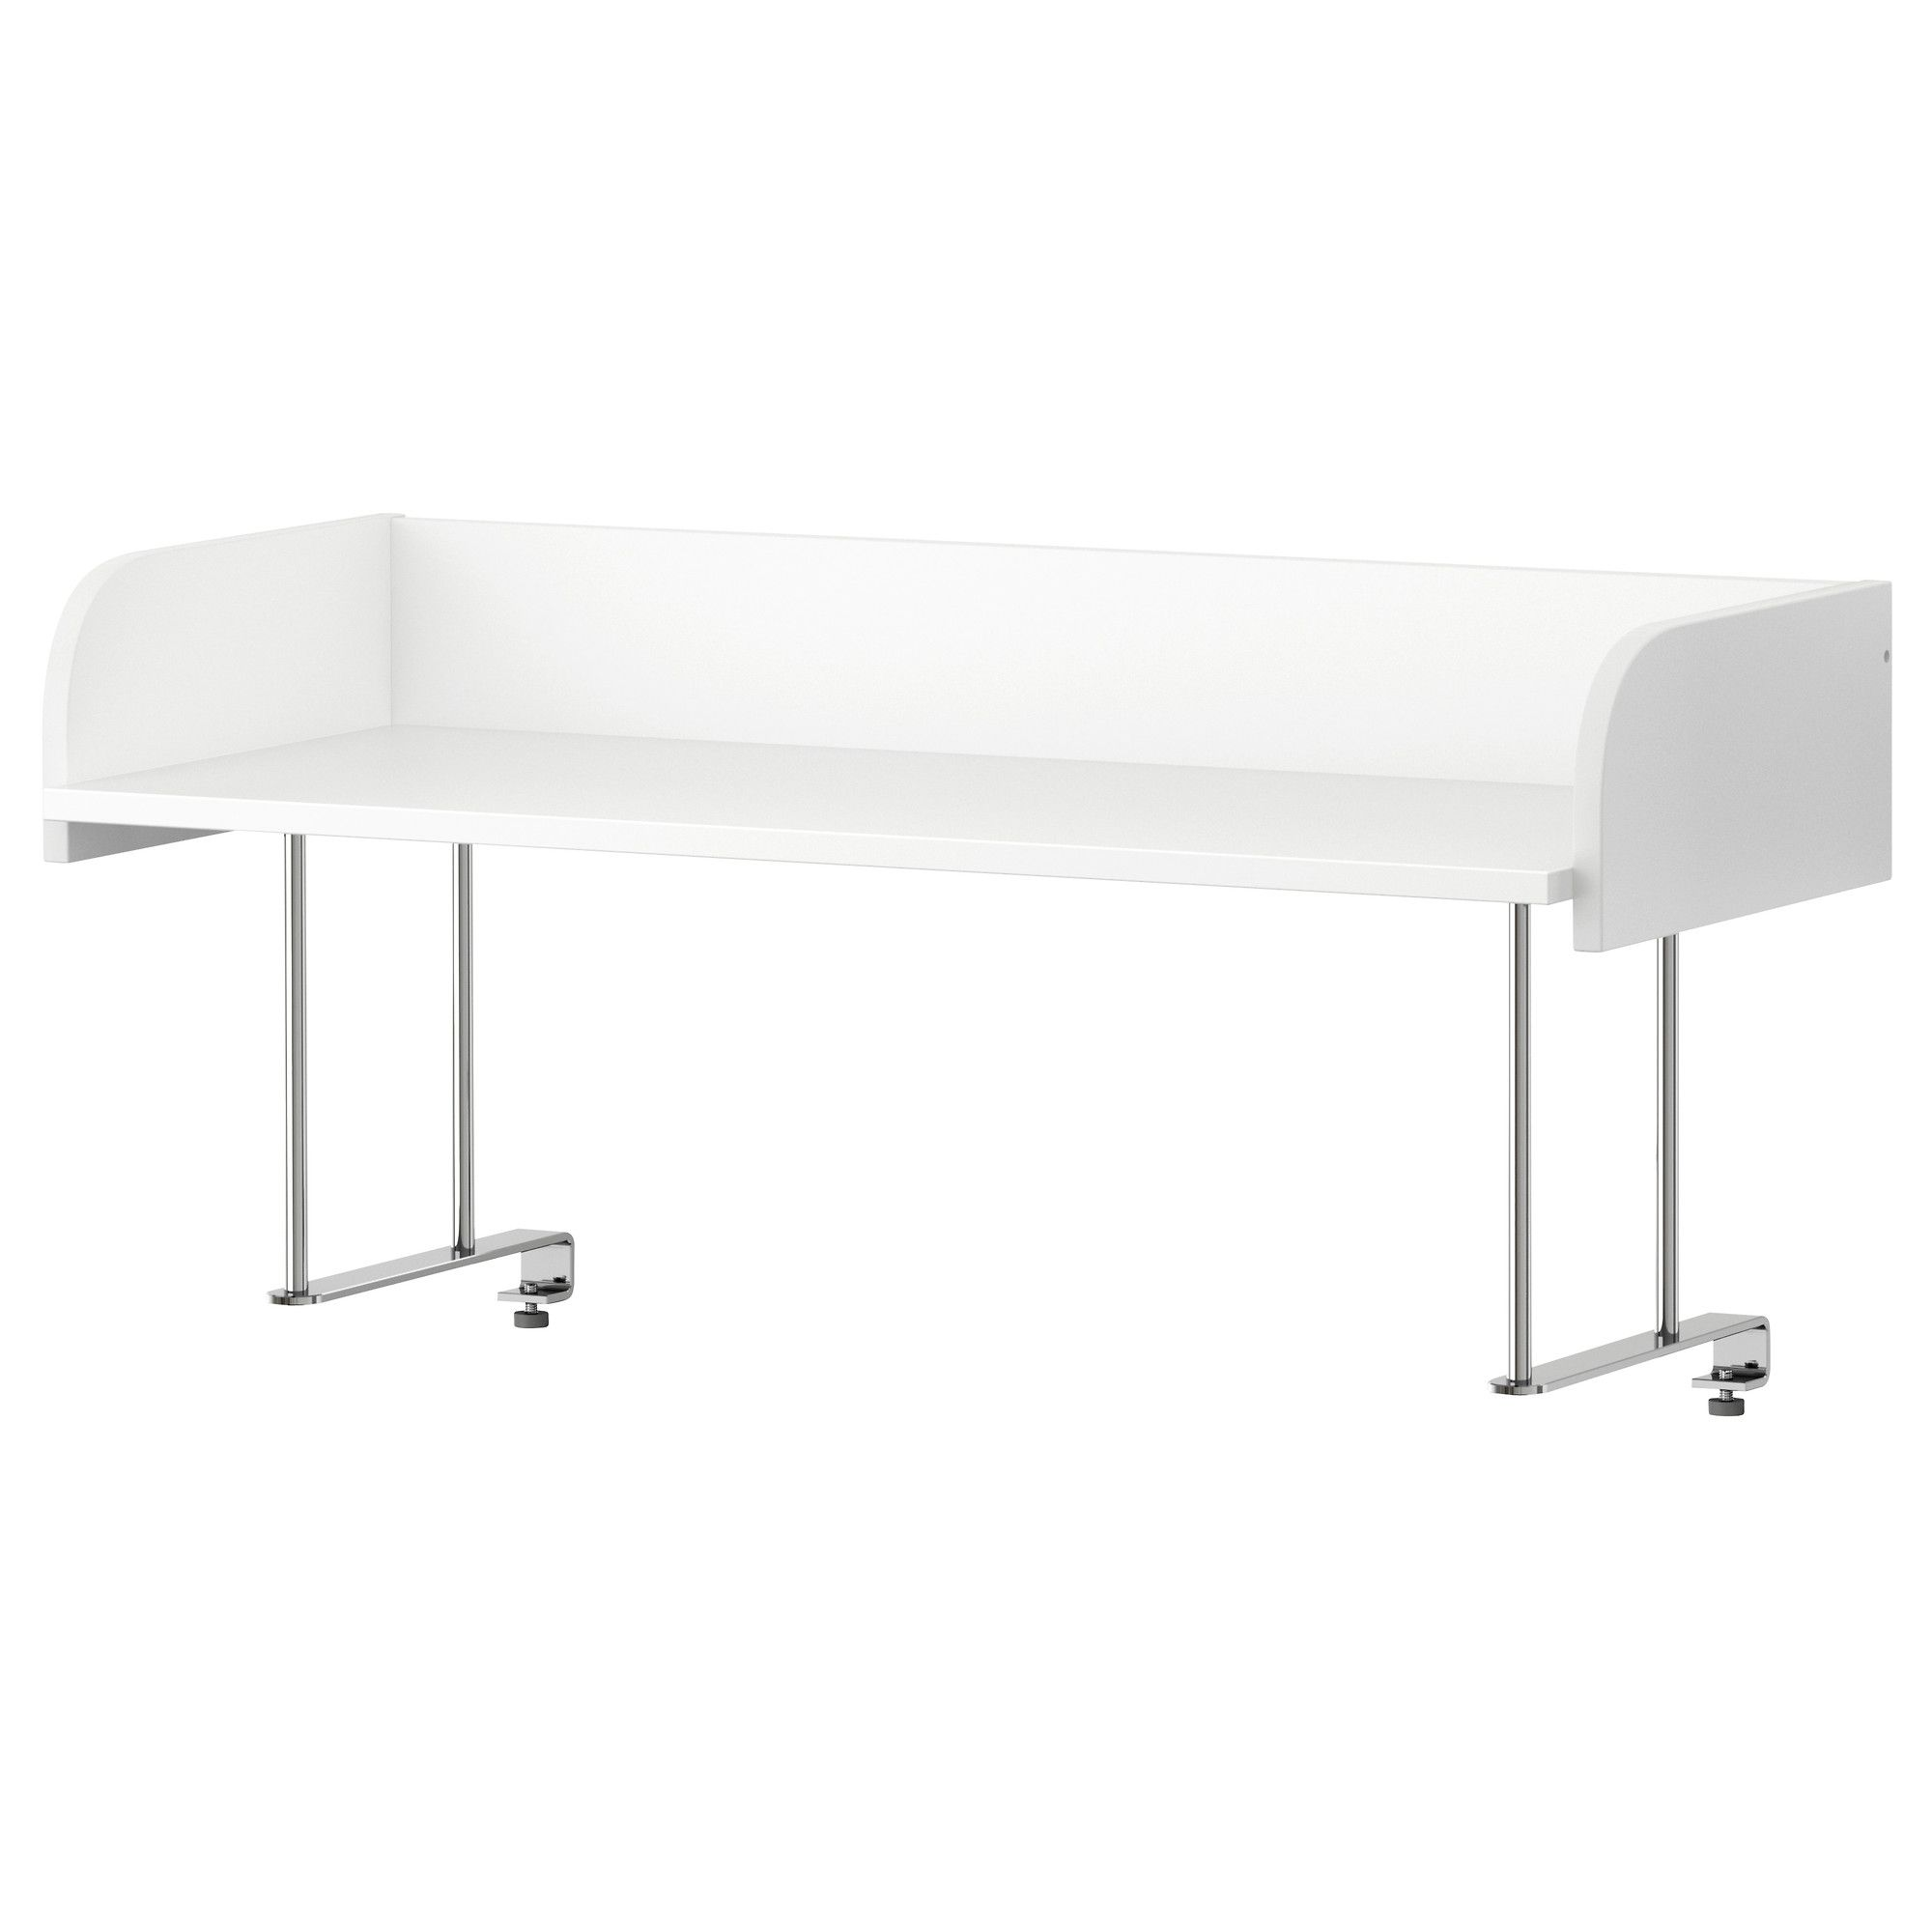 Galant desk top shelf white ikea for the home pinterest galant desk top shelf white ikea for the home pinterest desks shelves and attic office thecheapjerseys Image collections